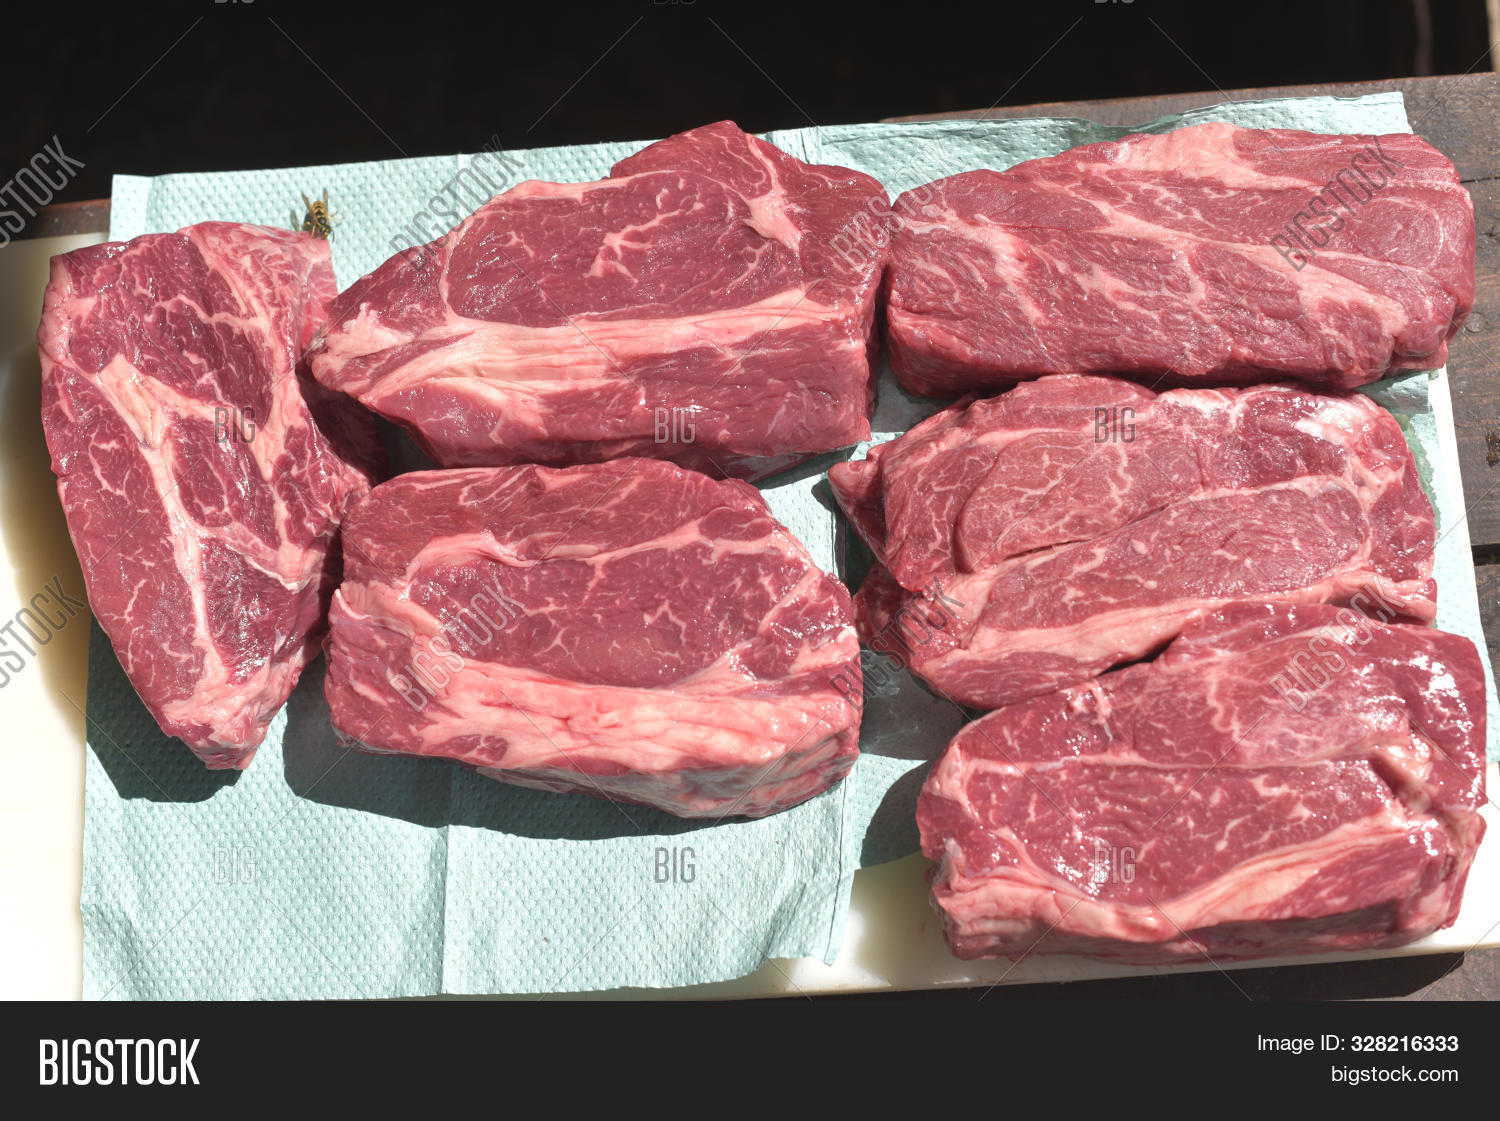 angus,background,barbecue,beef,beefsteak,board,butcher,chop,cook,cooking,cut,dinner,eye,fat,fillet,food,fresh,freshness,grill,ingredient,isolated,juicy,kitchen,loin,meal,meat,pepper,piece,pork,preparation,prime,protein,raw,red,restaurant,rib,rosemary,salt,sirloin,slice,spice,steak,table,tenderloin,uncooked,veal,white,wood,wooden